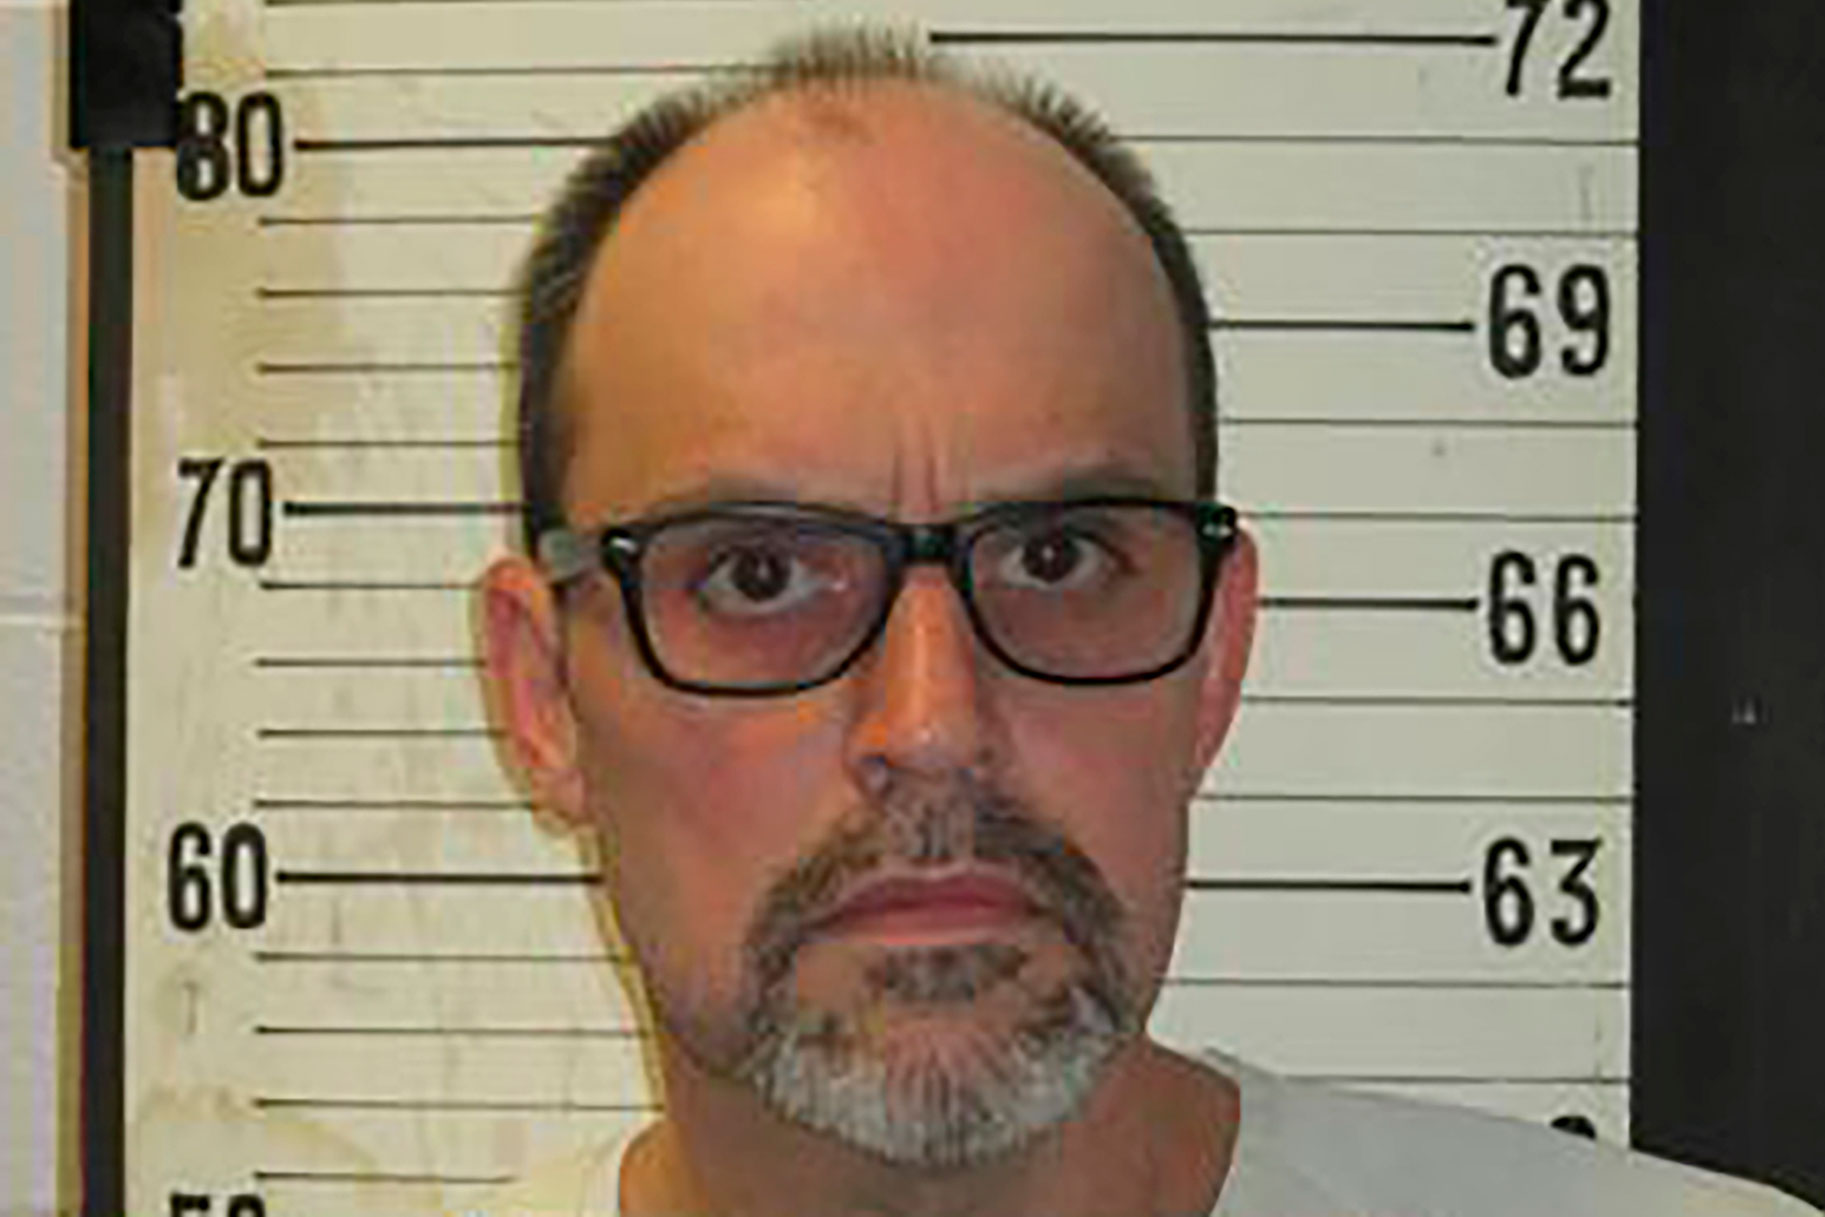 Wedding Bells Ringing For Death Row Inmate Who Brutally Murdered Four People During Killing Spree